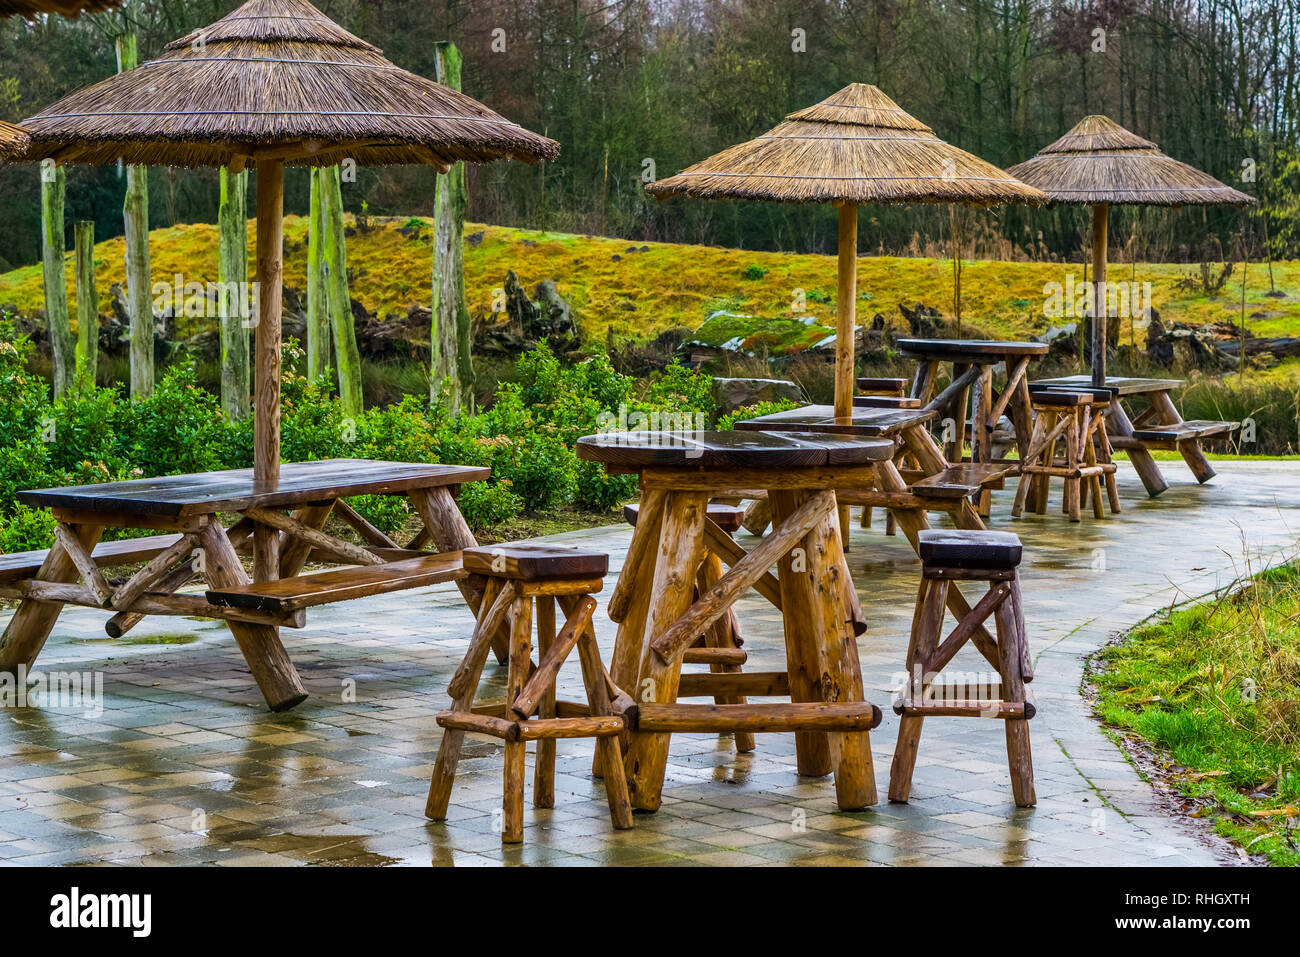 exotic looking bar that is empty on a rainy day, terrace and garden furniture, bad day in the catering industry - Stock Image